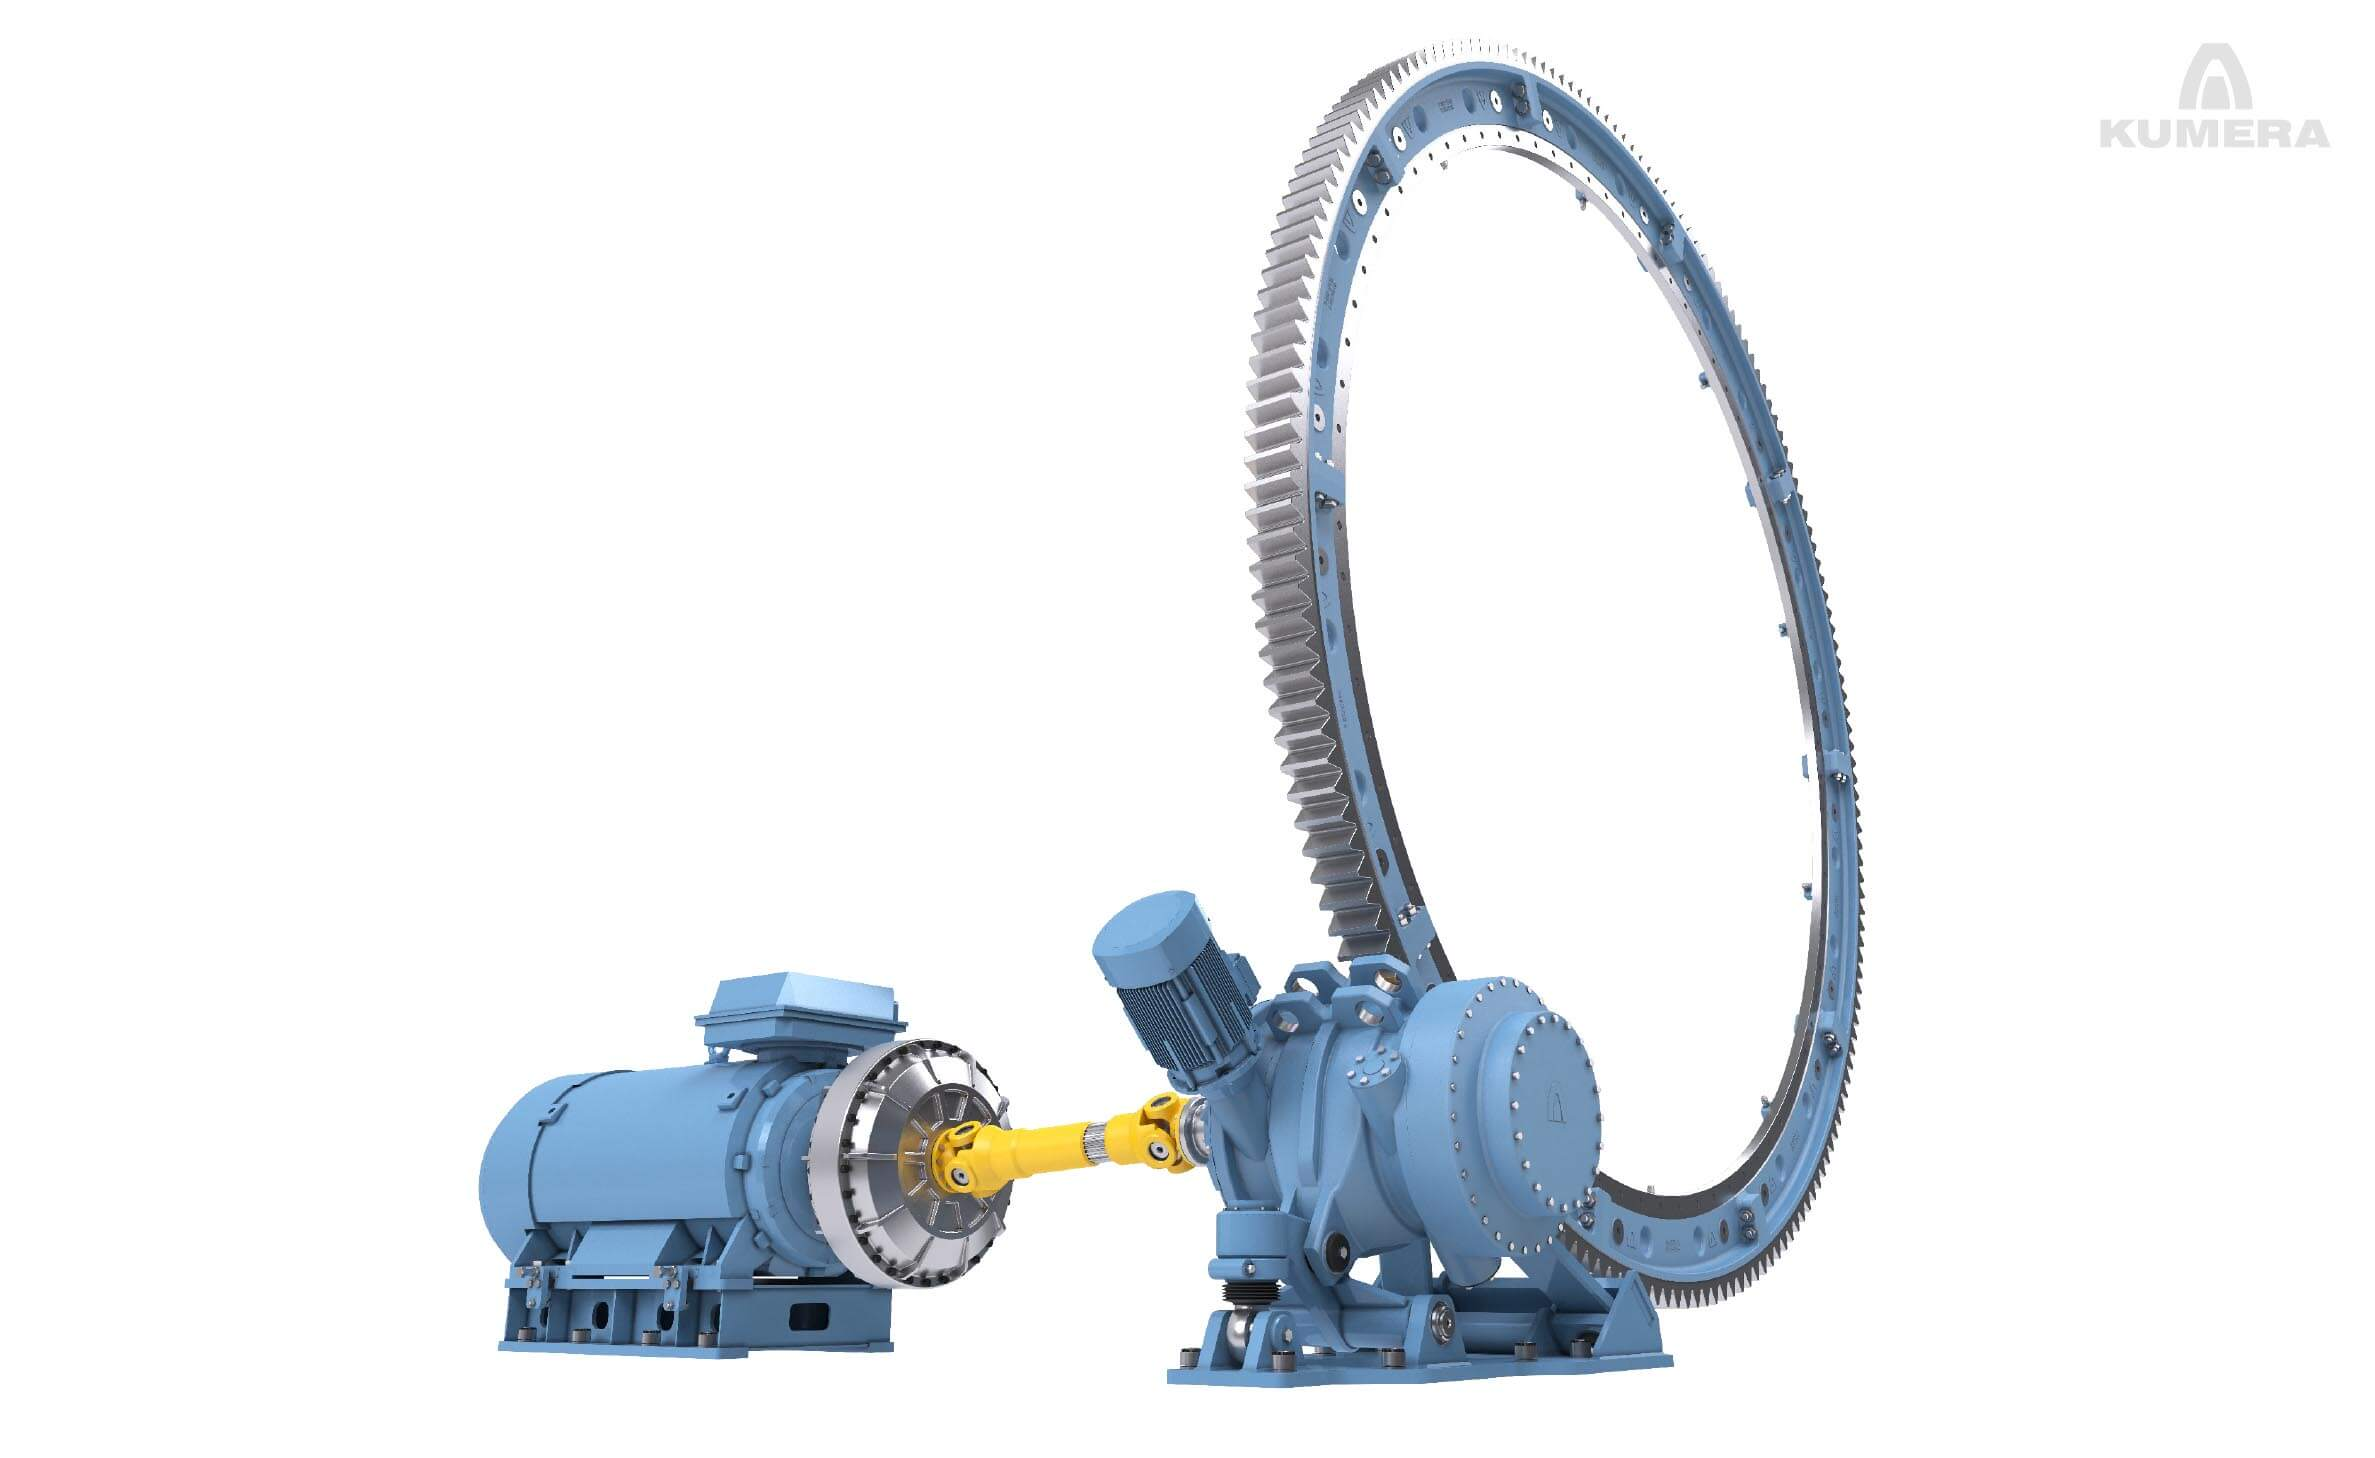 Kumera Girth Gears for Drum Drives. Kumera girth gear can be single or double pinion driven. Pinions are manufactured as a single part with an integrated shaft; however, the pinion can be separated and mounted on a separate shaft, supported by bearings, or, on the output shaft of the main gear unit.